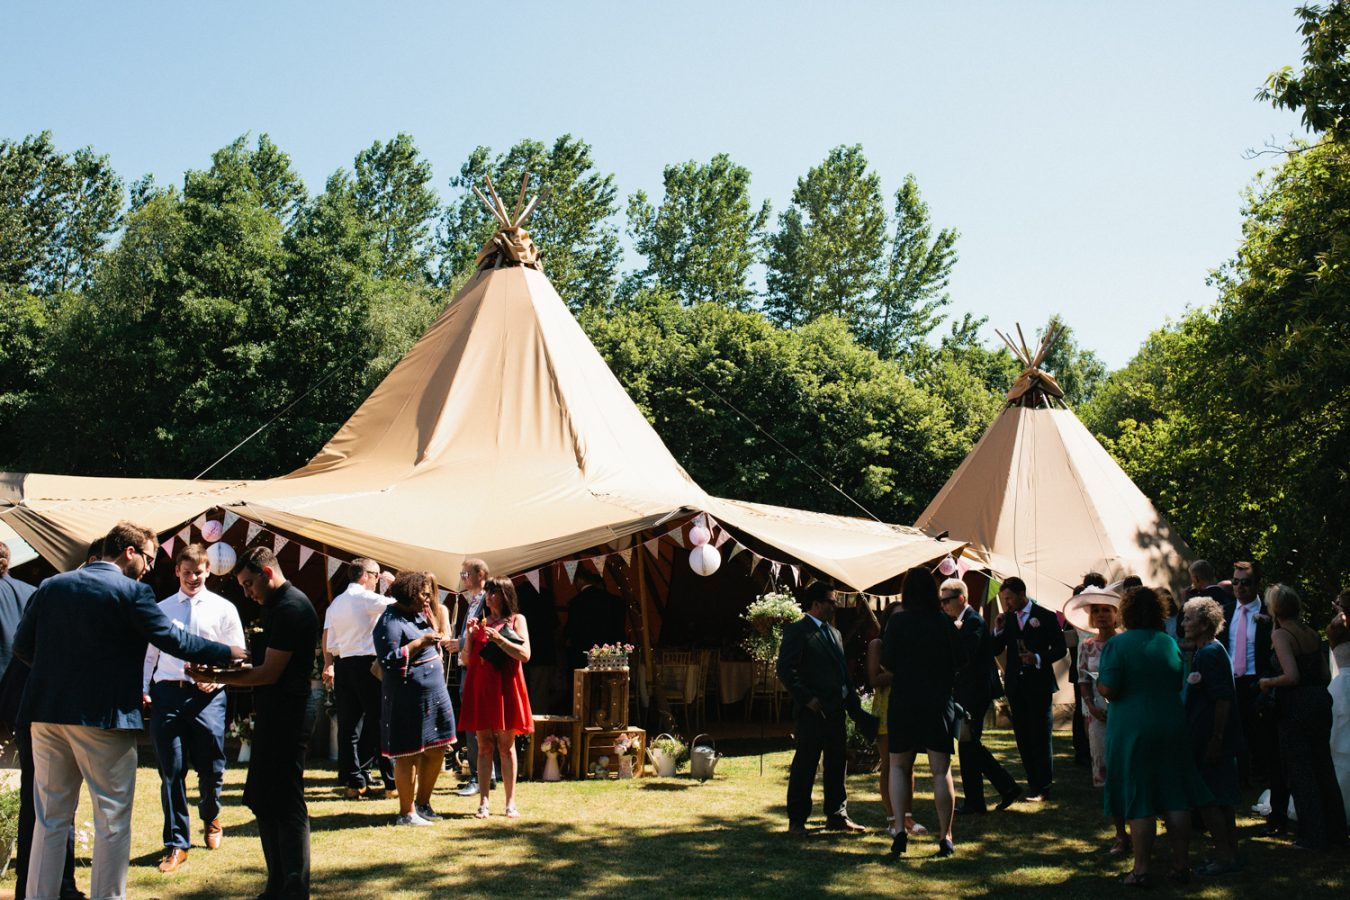 Wedding guests enjoying a beautiful Tipi Weddings in Kent by Kent Wedding Photographer Matilda Delves who specialises in natural wedding photography in Kent and Sussex